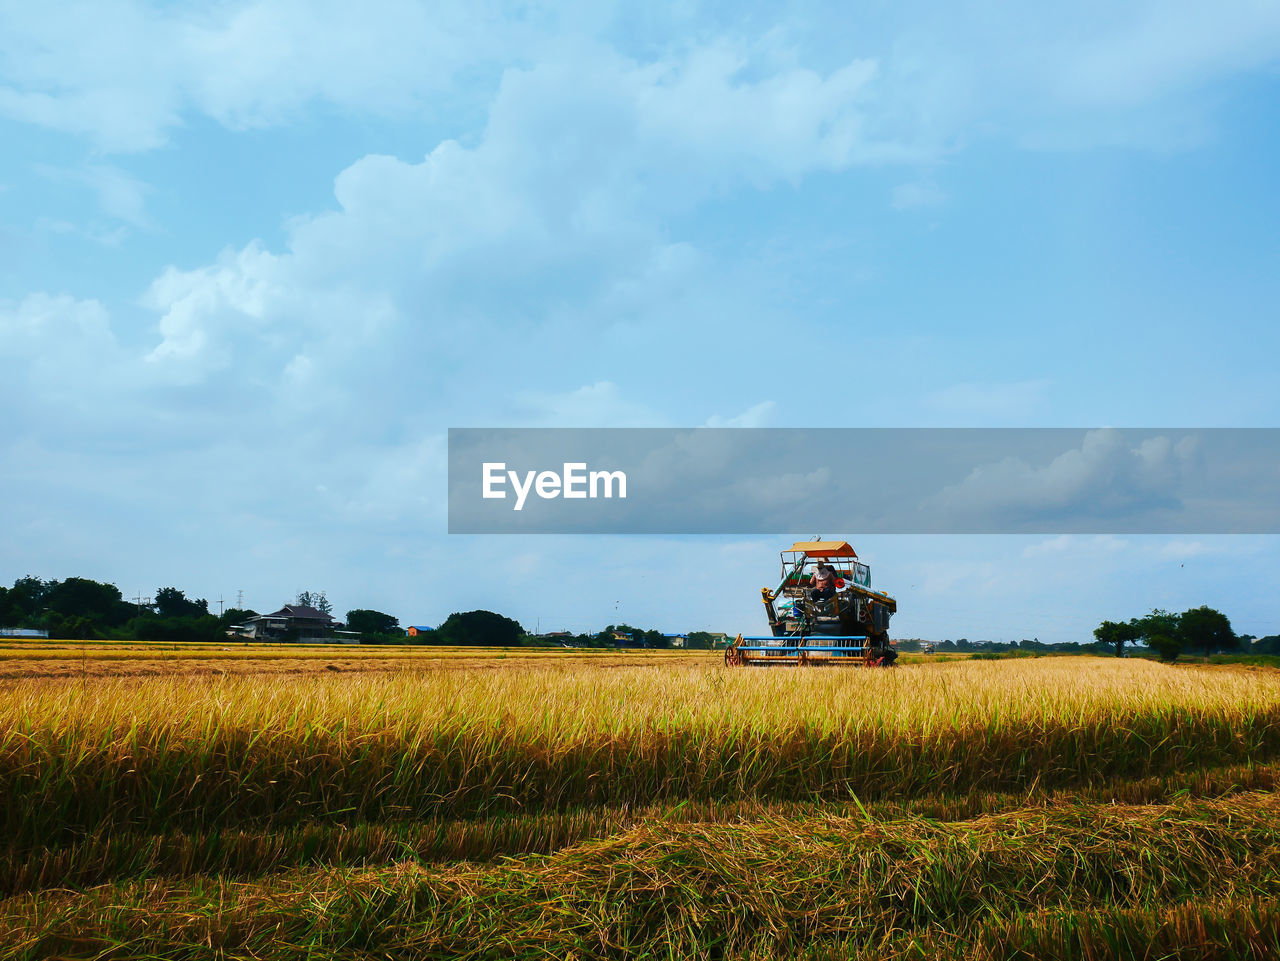 field, land, sky, cloud - sky, plant, agriculture, growth, landscape, environment, scenics - nature, farm, rural scene, nature, beauty in nature, day, agricultural machinery, crop, green color, land vehicle, tranquil scene, outdoors, no people, plantation